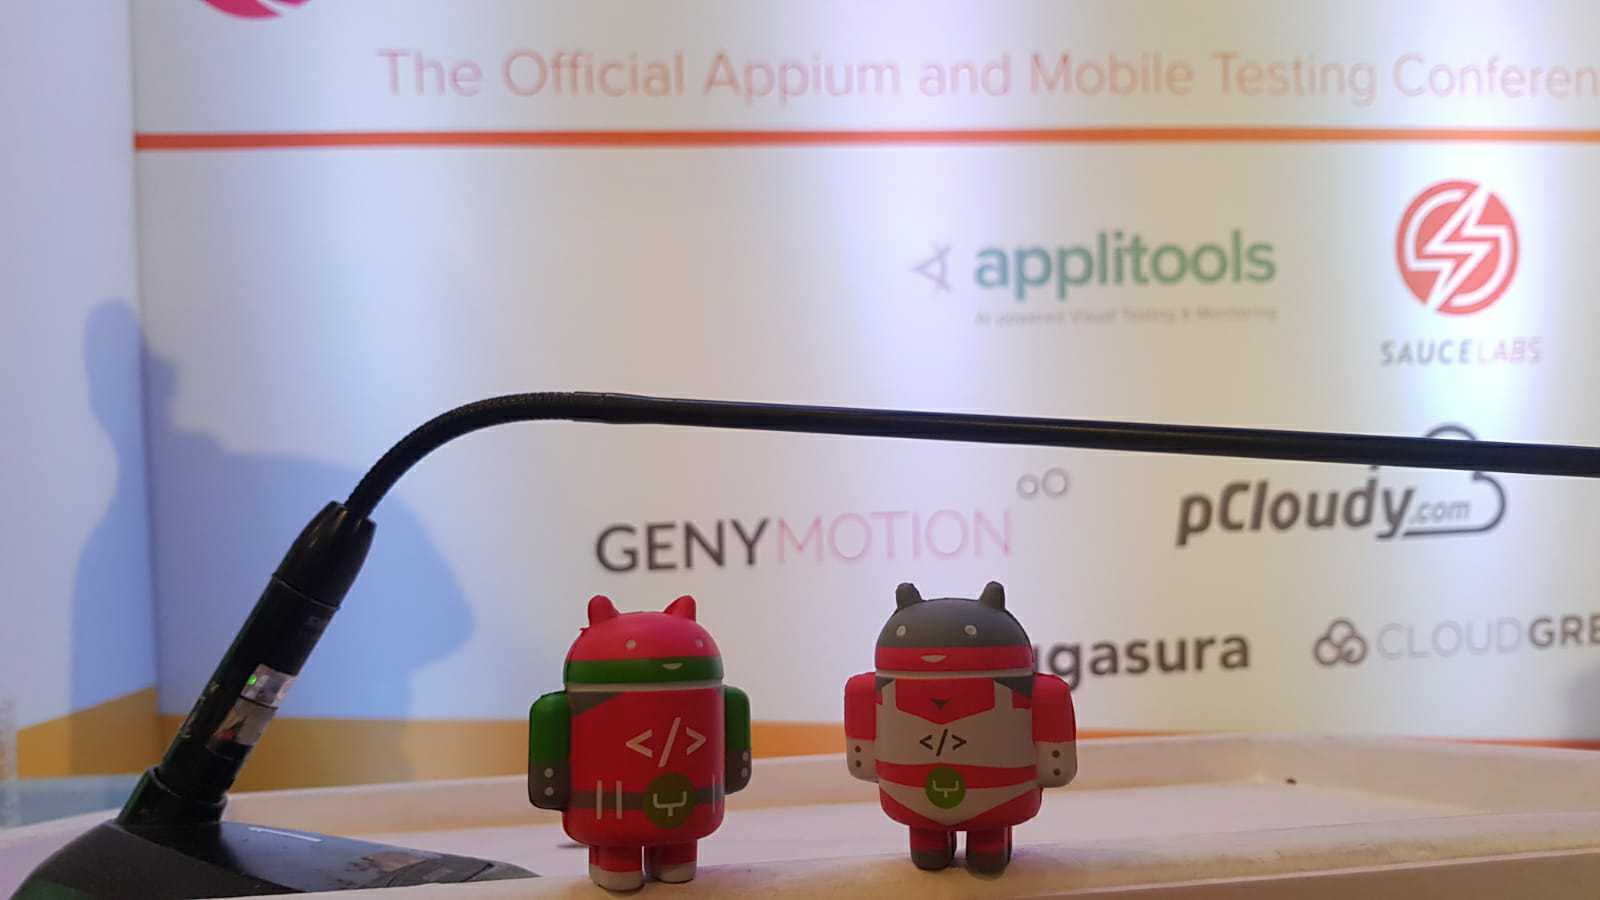 AppiumConf 2019 round-up from the Genymotion Team